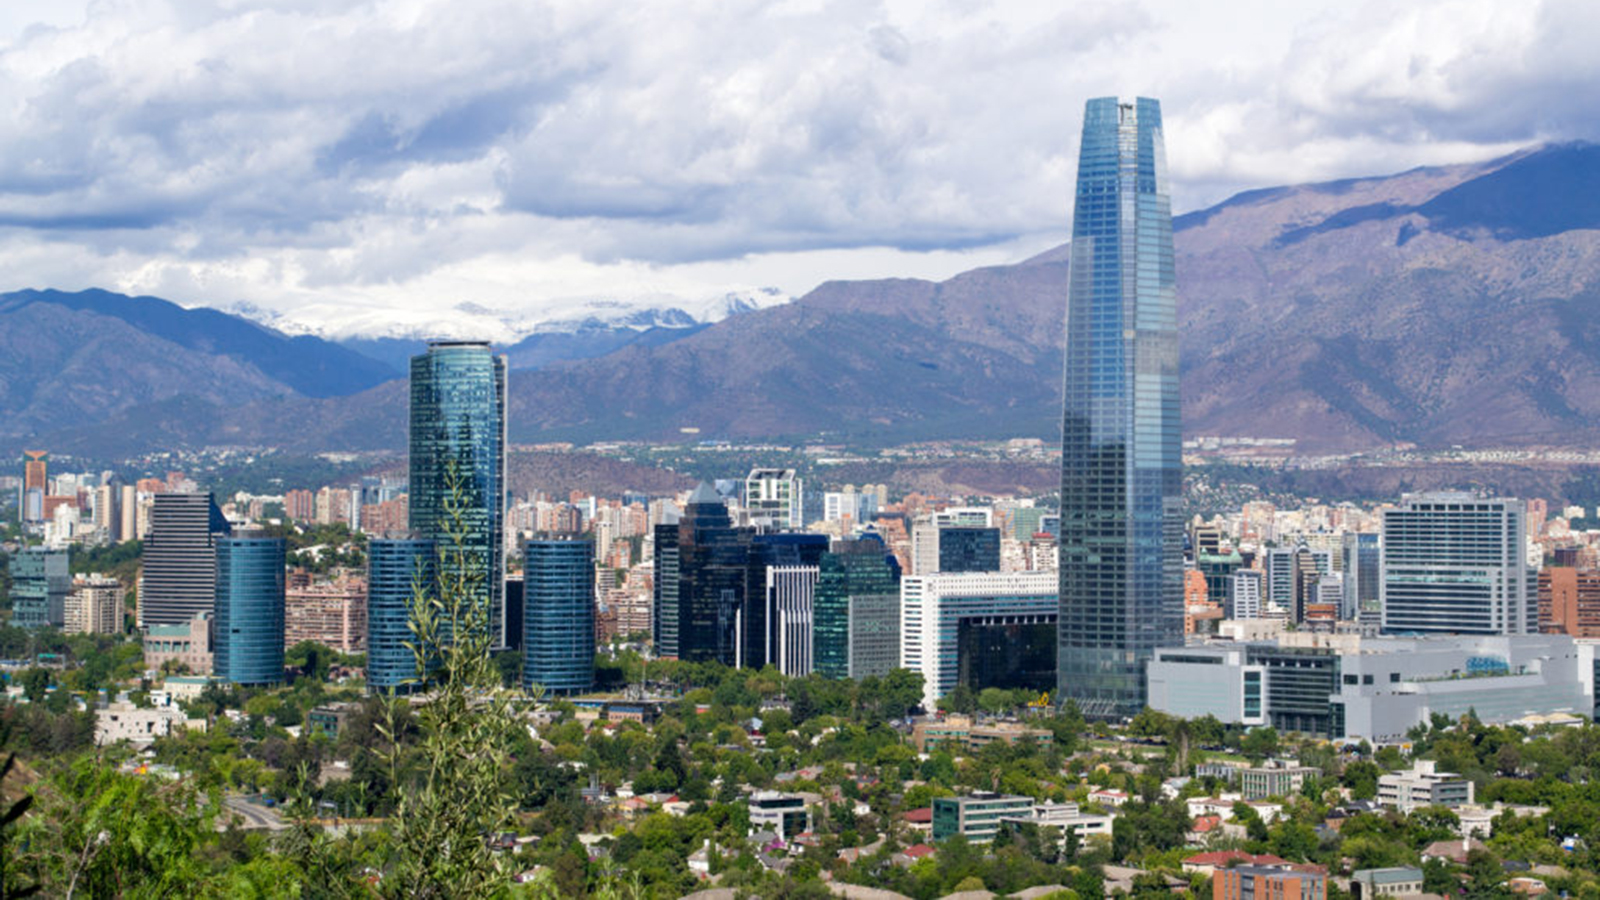 Cityscape of Santiago, Chile with mountains in the background